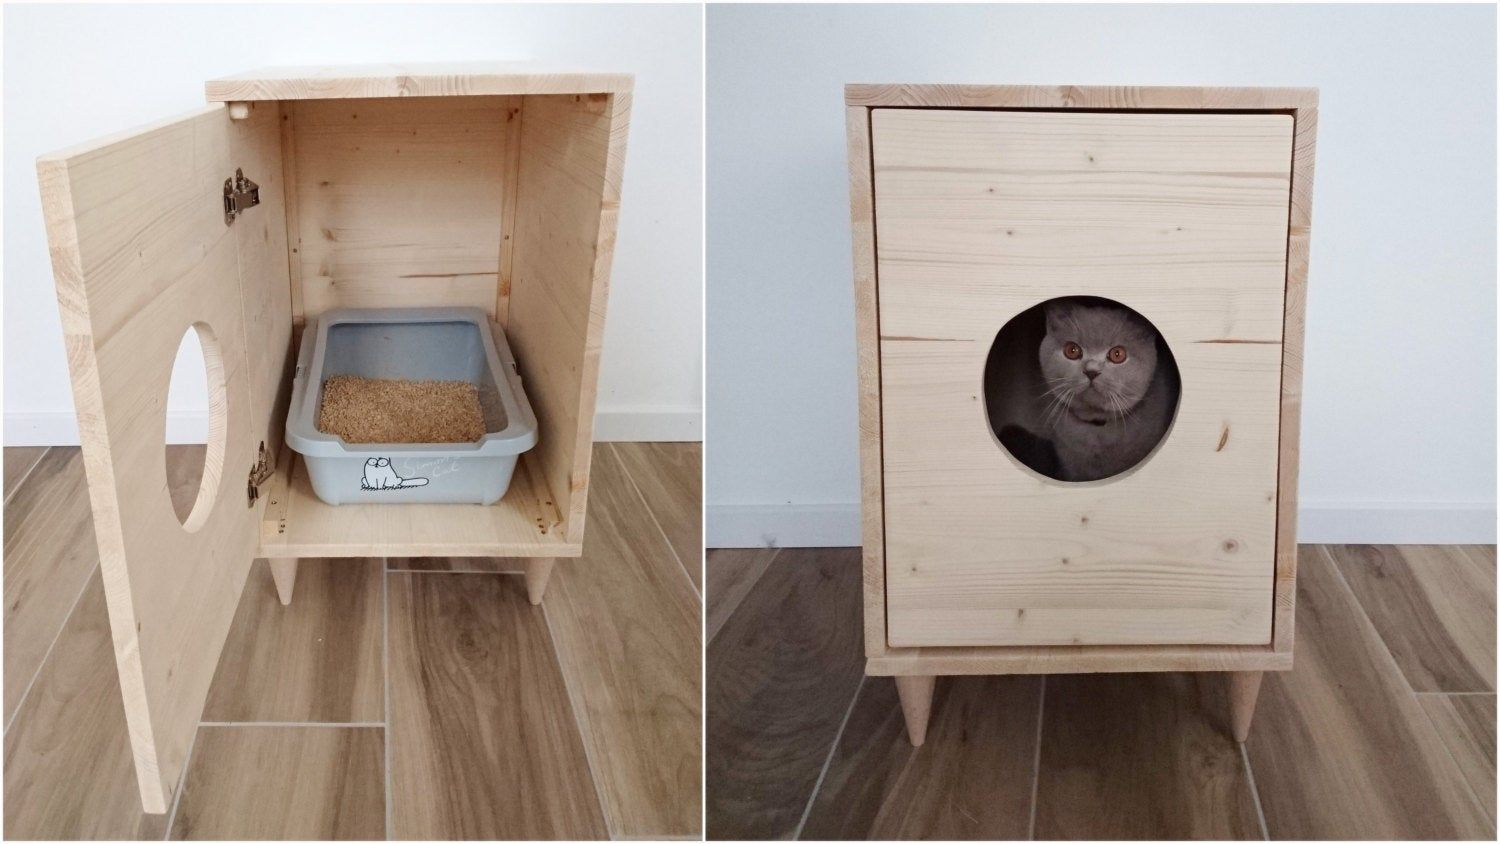 Cat Litter Box Cover Pet Furniture Cat House Modern Litter Box Cabinet Made Of Spruce Wood Muebles Para Mascotas Casita Para Gatos Cajas De Arena Para Gato